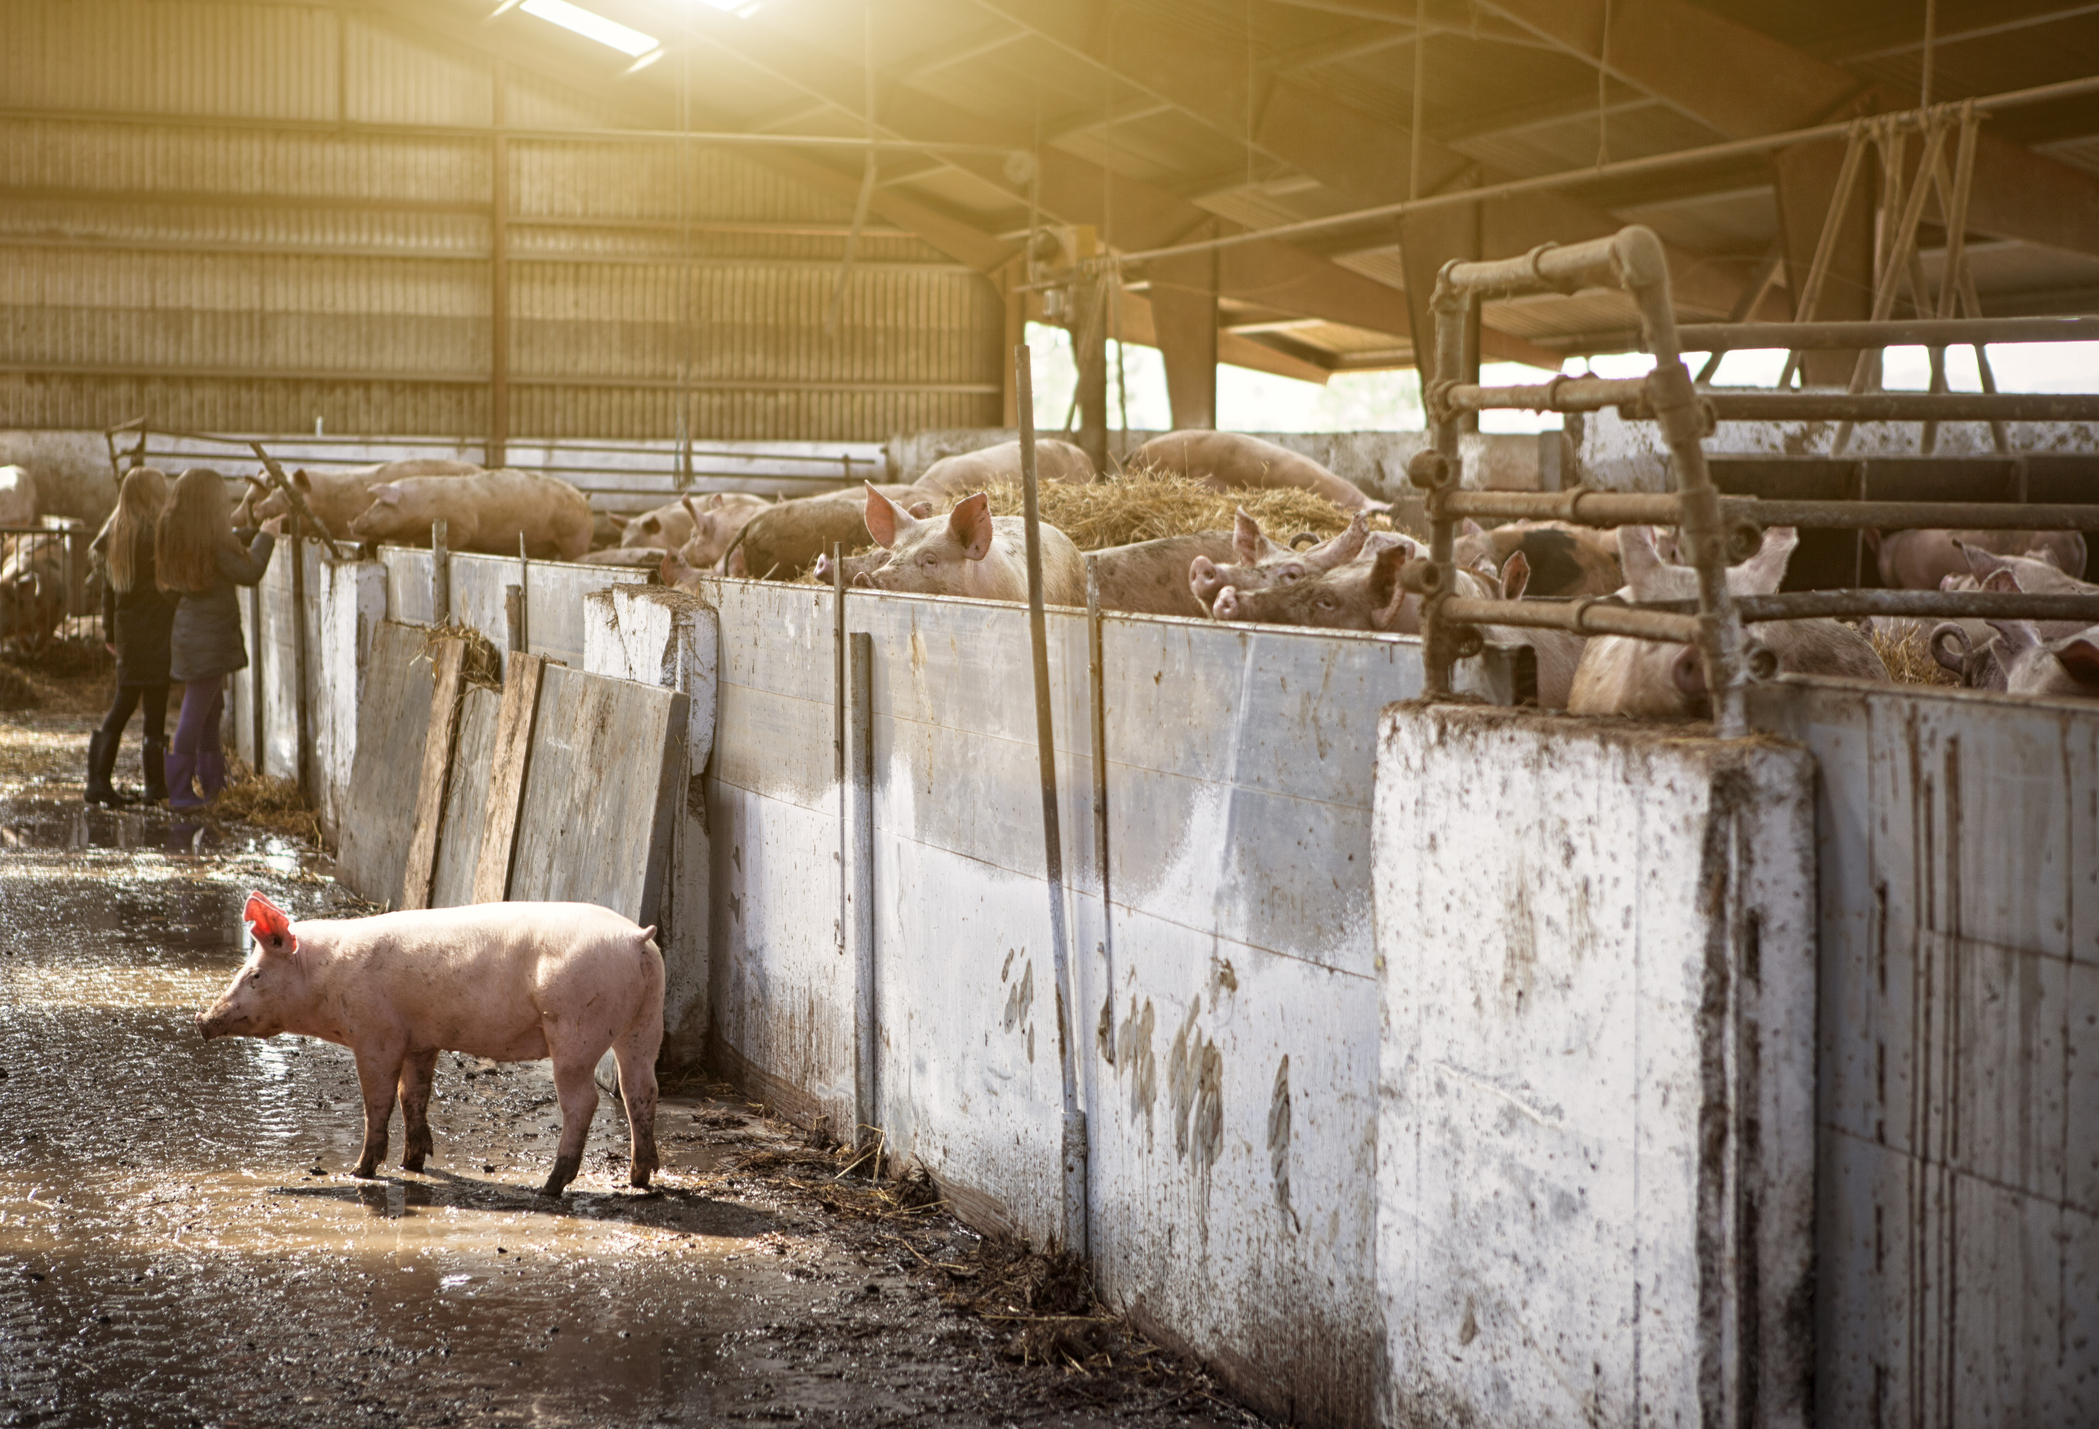 The Five Types of Pig Farms